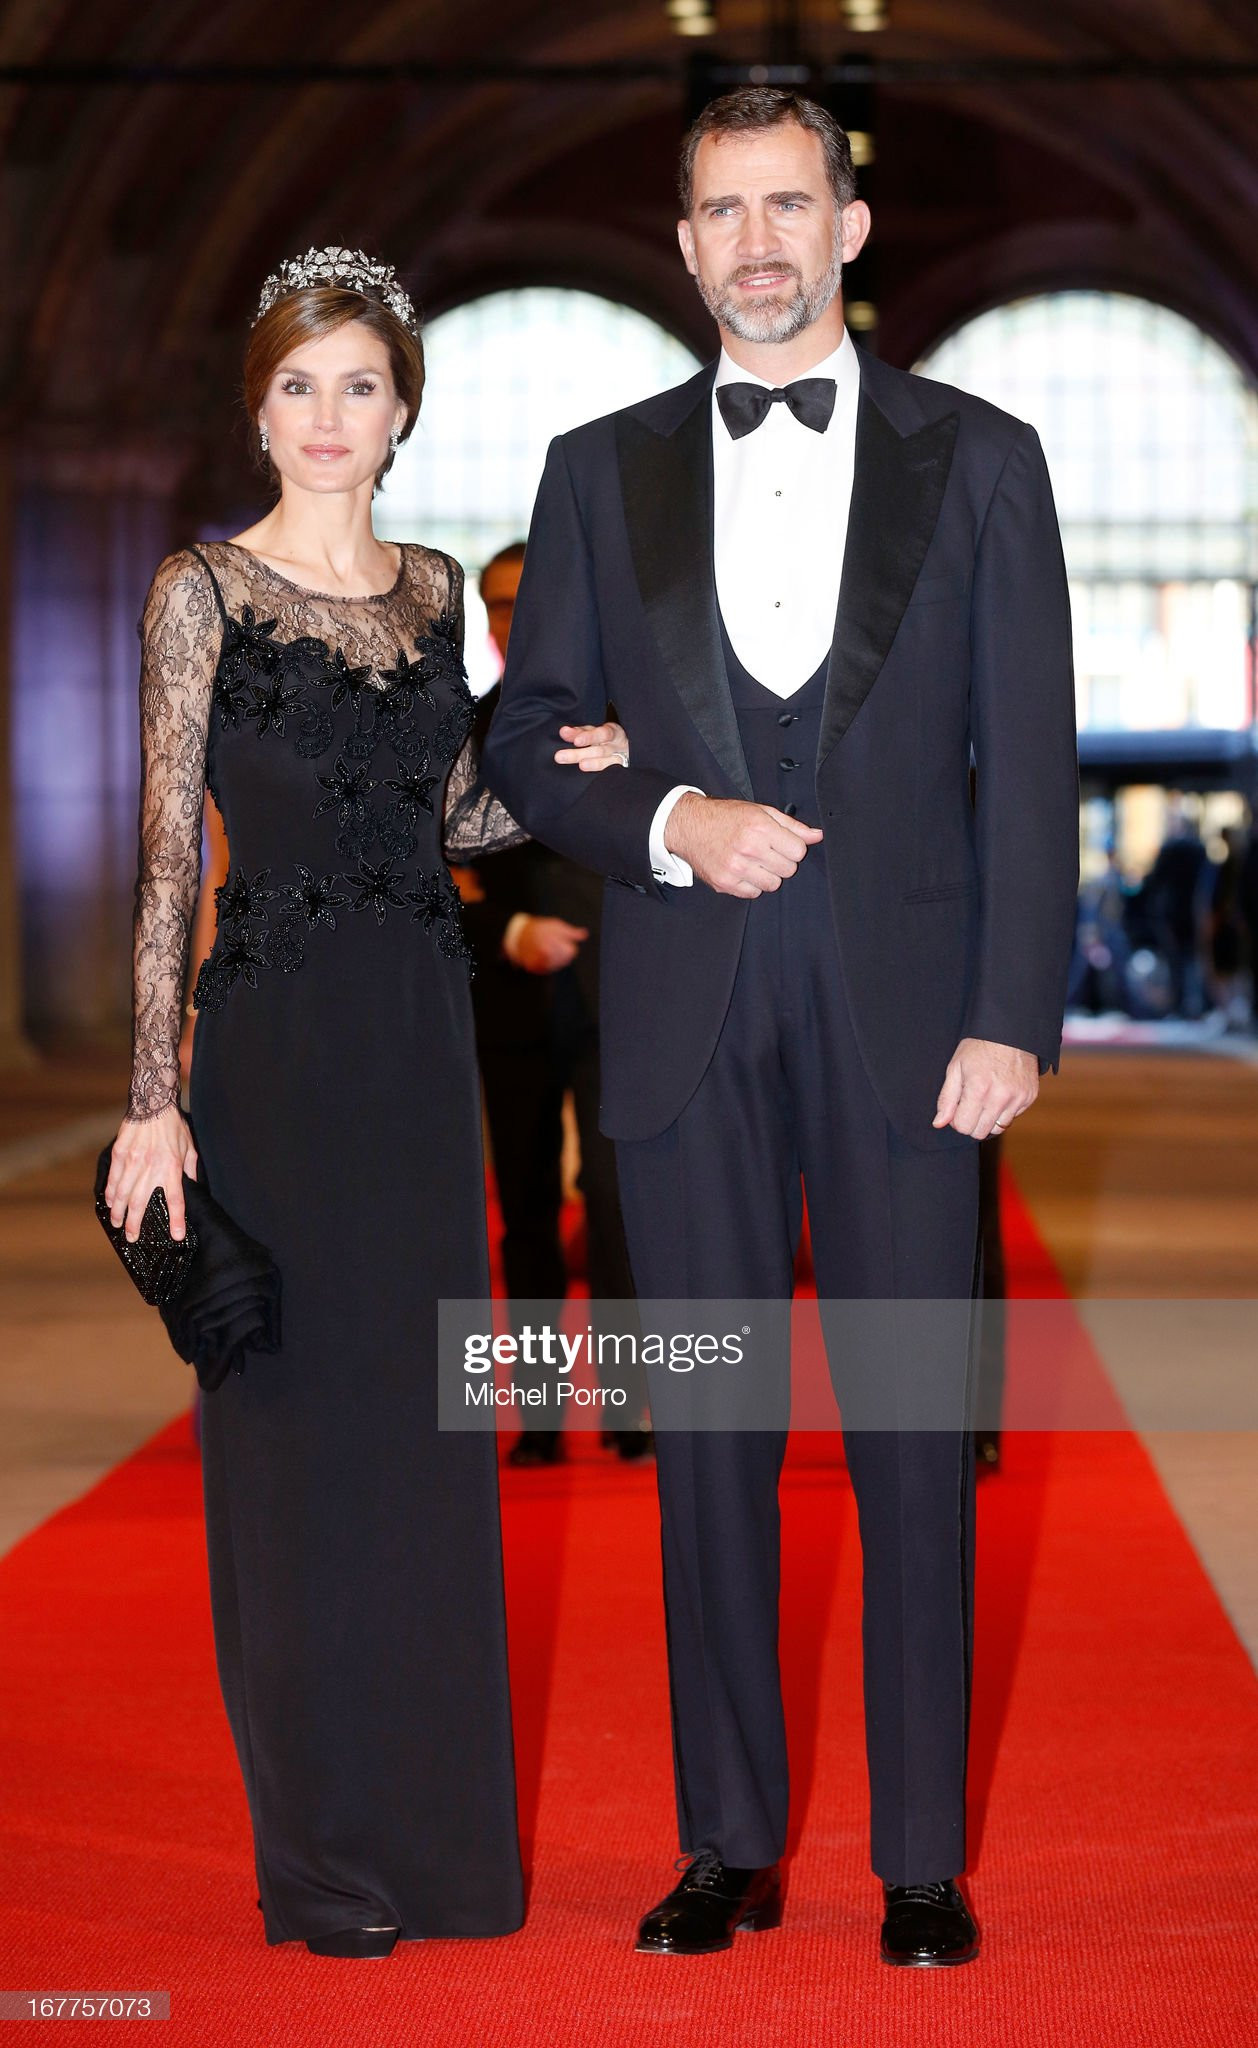 Queen Beatrix Of The Netherlands Hosts A Dinner Ahead Of Her Abdication : News Photo